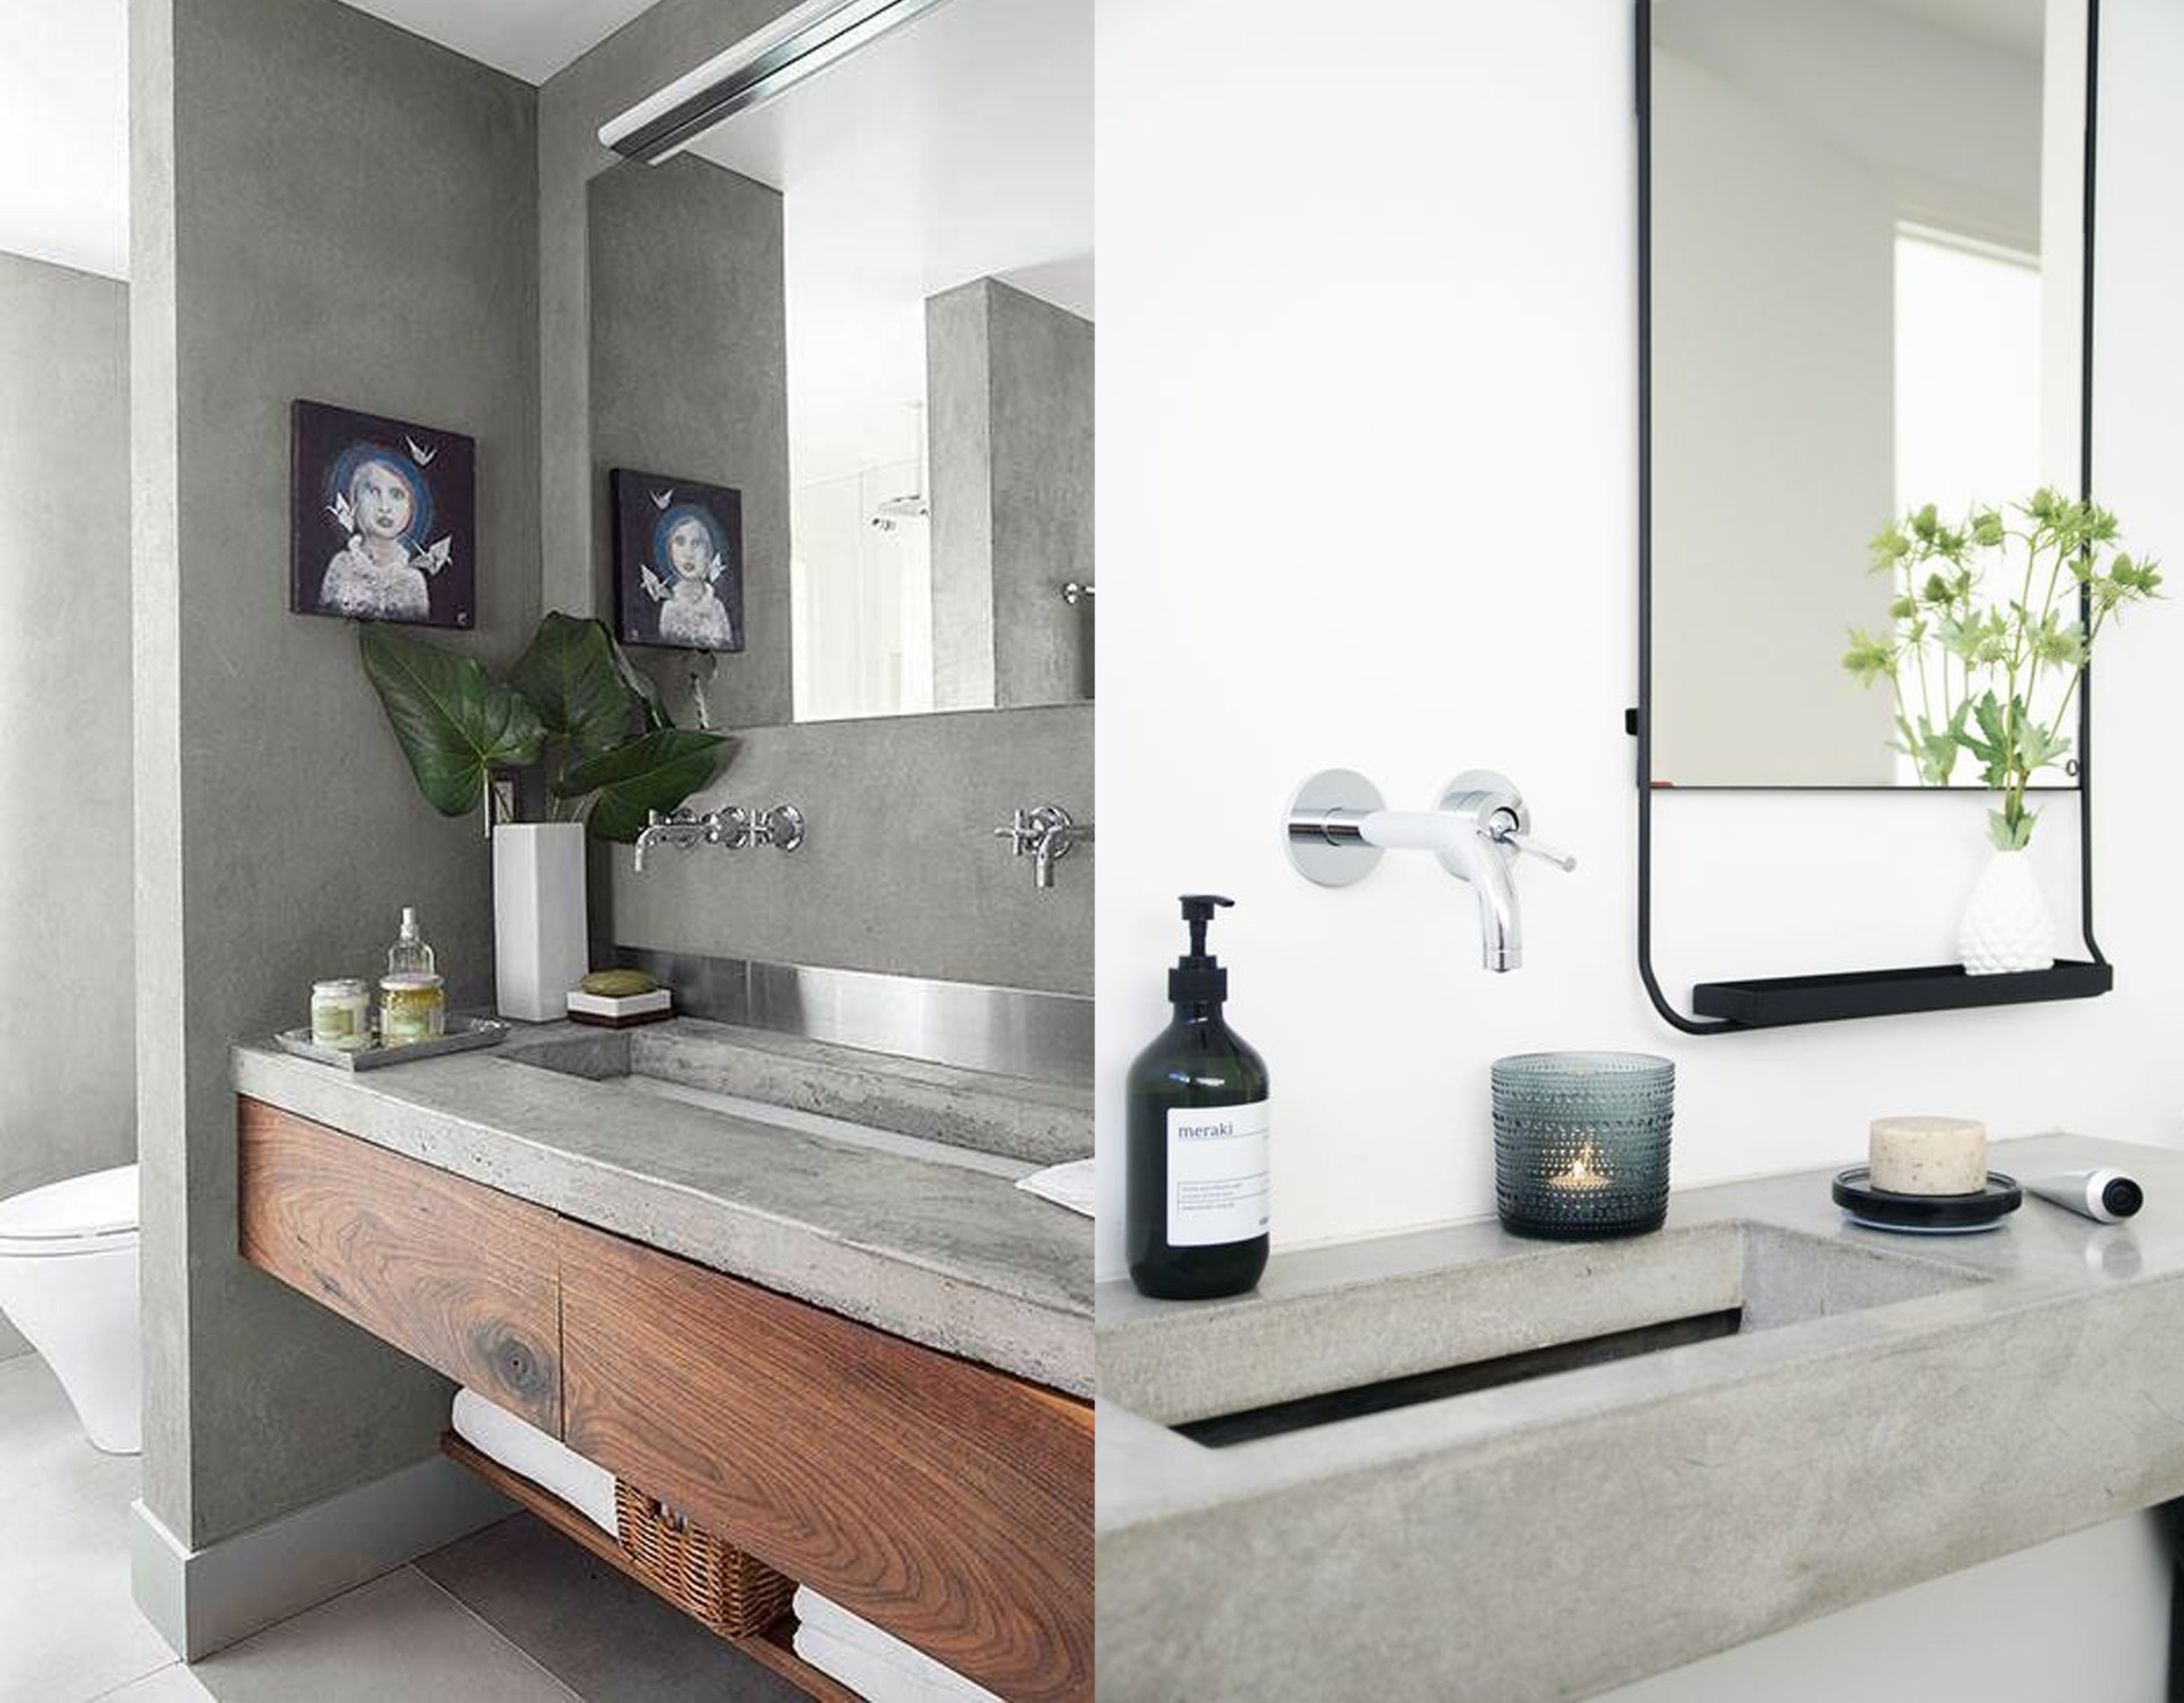 concrete counter top via  Domino  - concrete washbasin via  Funksjonelt